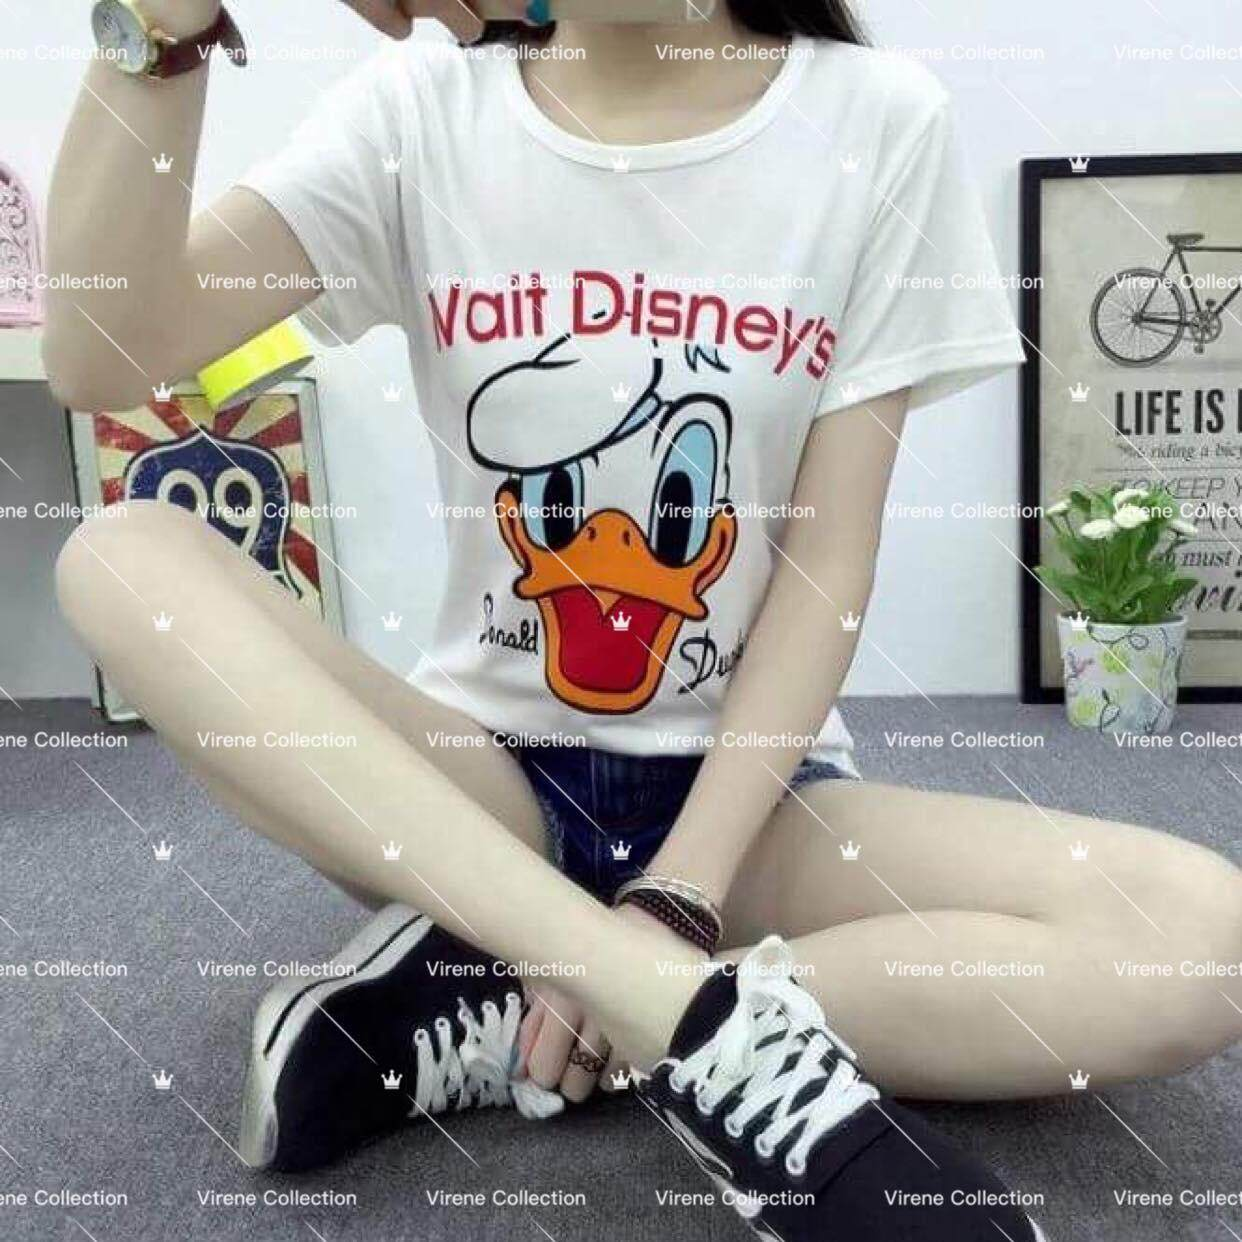 Virene Wholesale Ready Stock Korean Fashion Donald Duck Printing T-Shirt / Blouse ( M-2xl ) 211220c By Virene Collection.